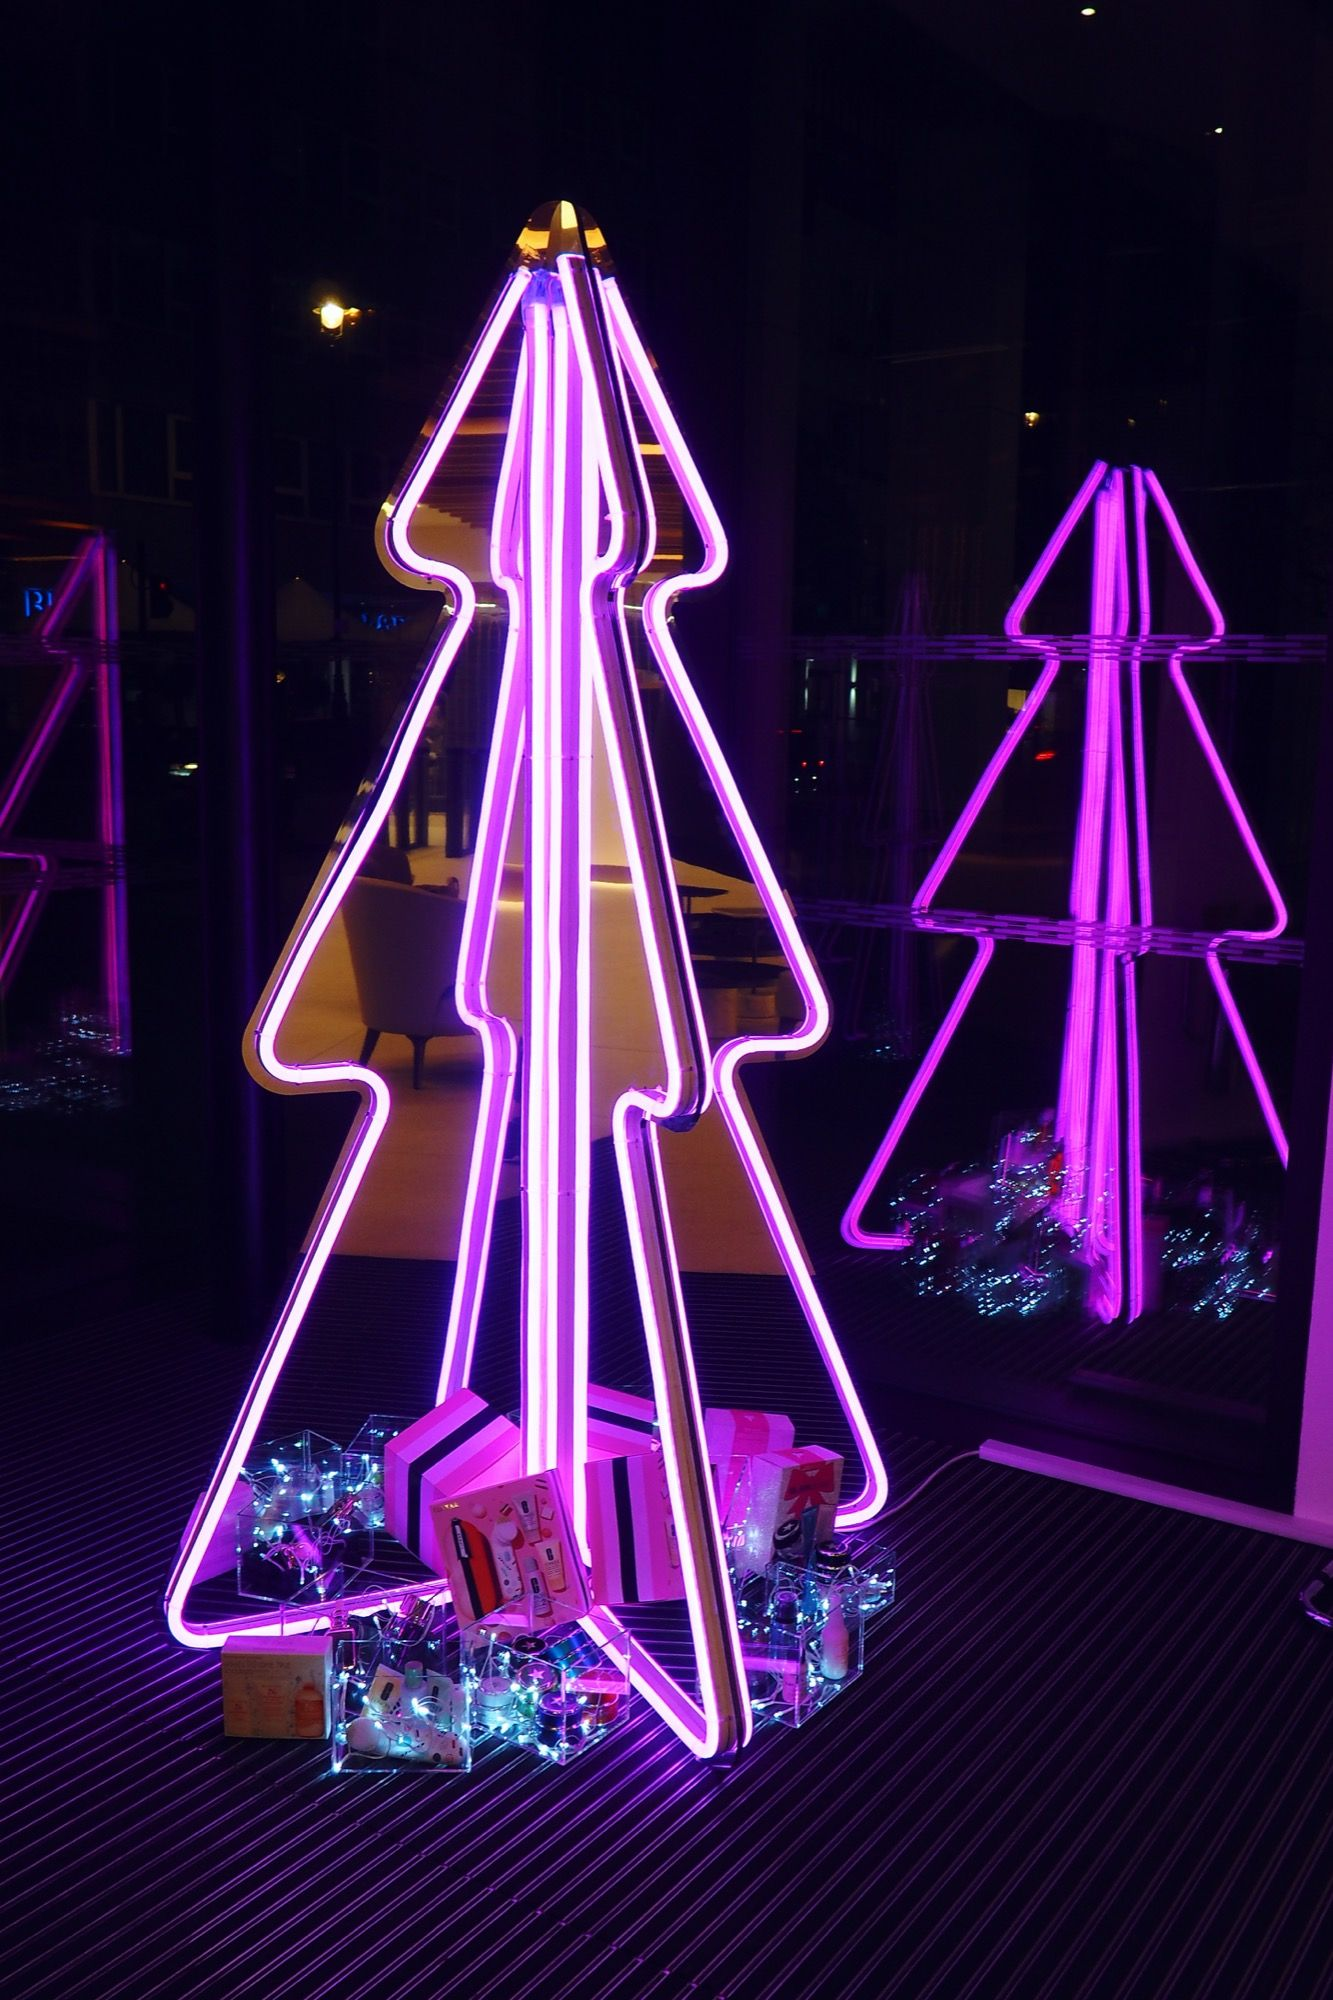 I M So Pleased With The Neon Christmas Tree Installation I Created For Estee Lauder Uk Diy Christmas Tree Christmas Lights Hanging Christmas Lights